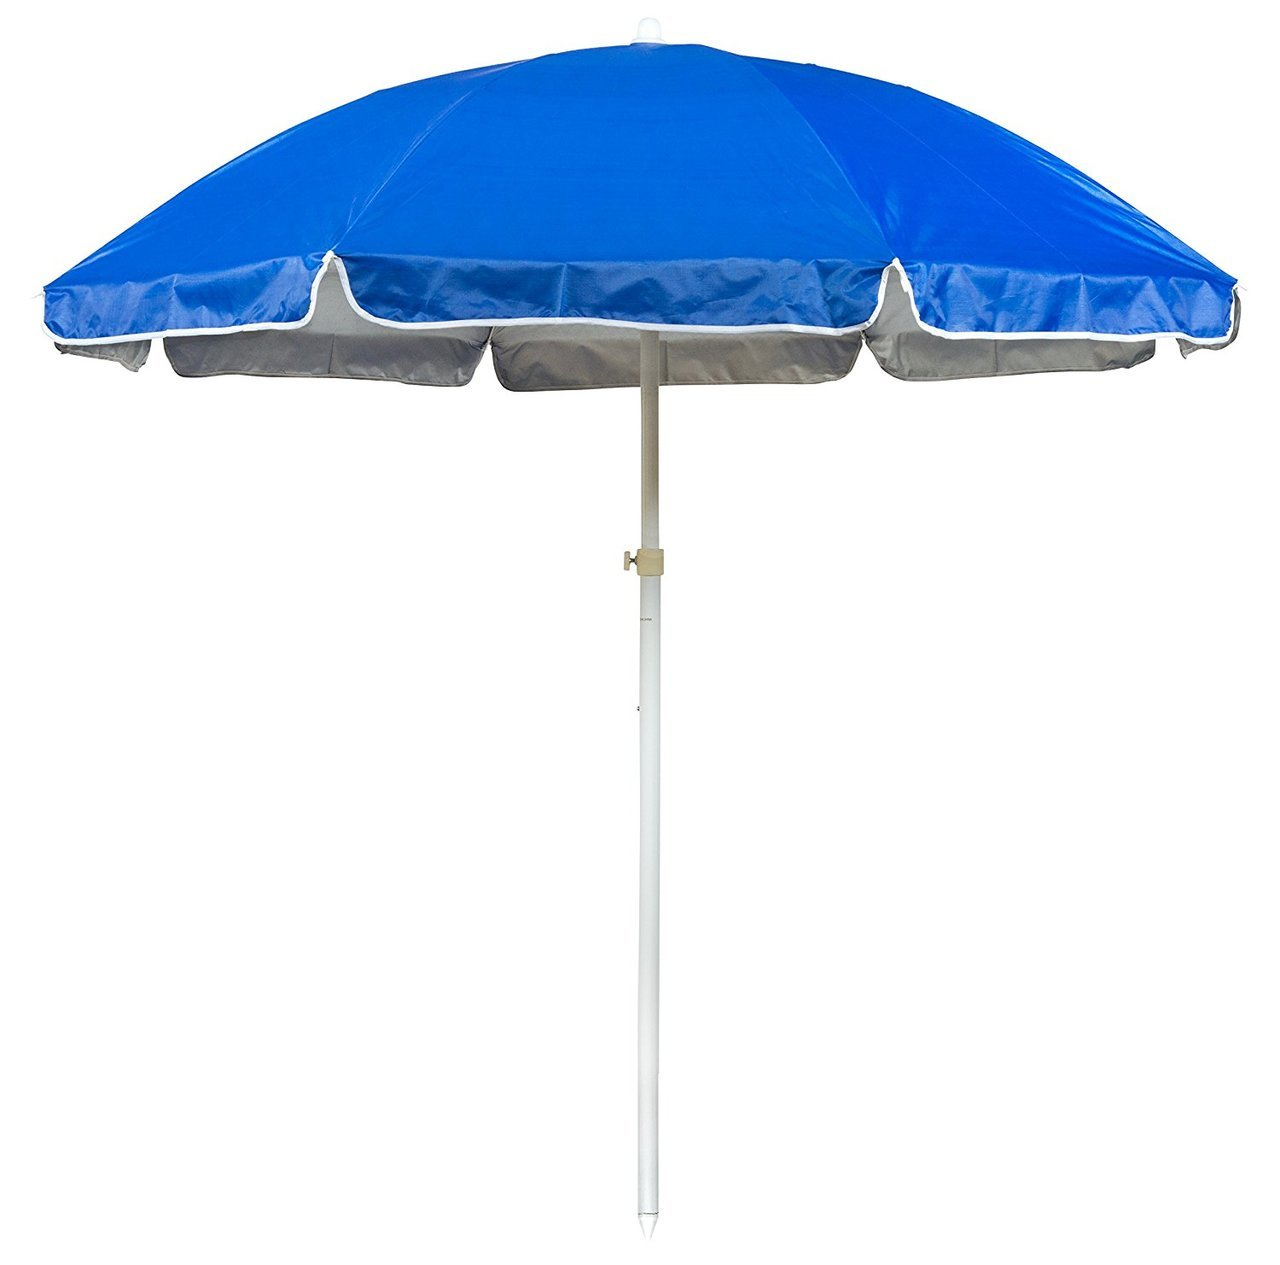 6.5' Portable Beach and Sports Umbrella